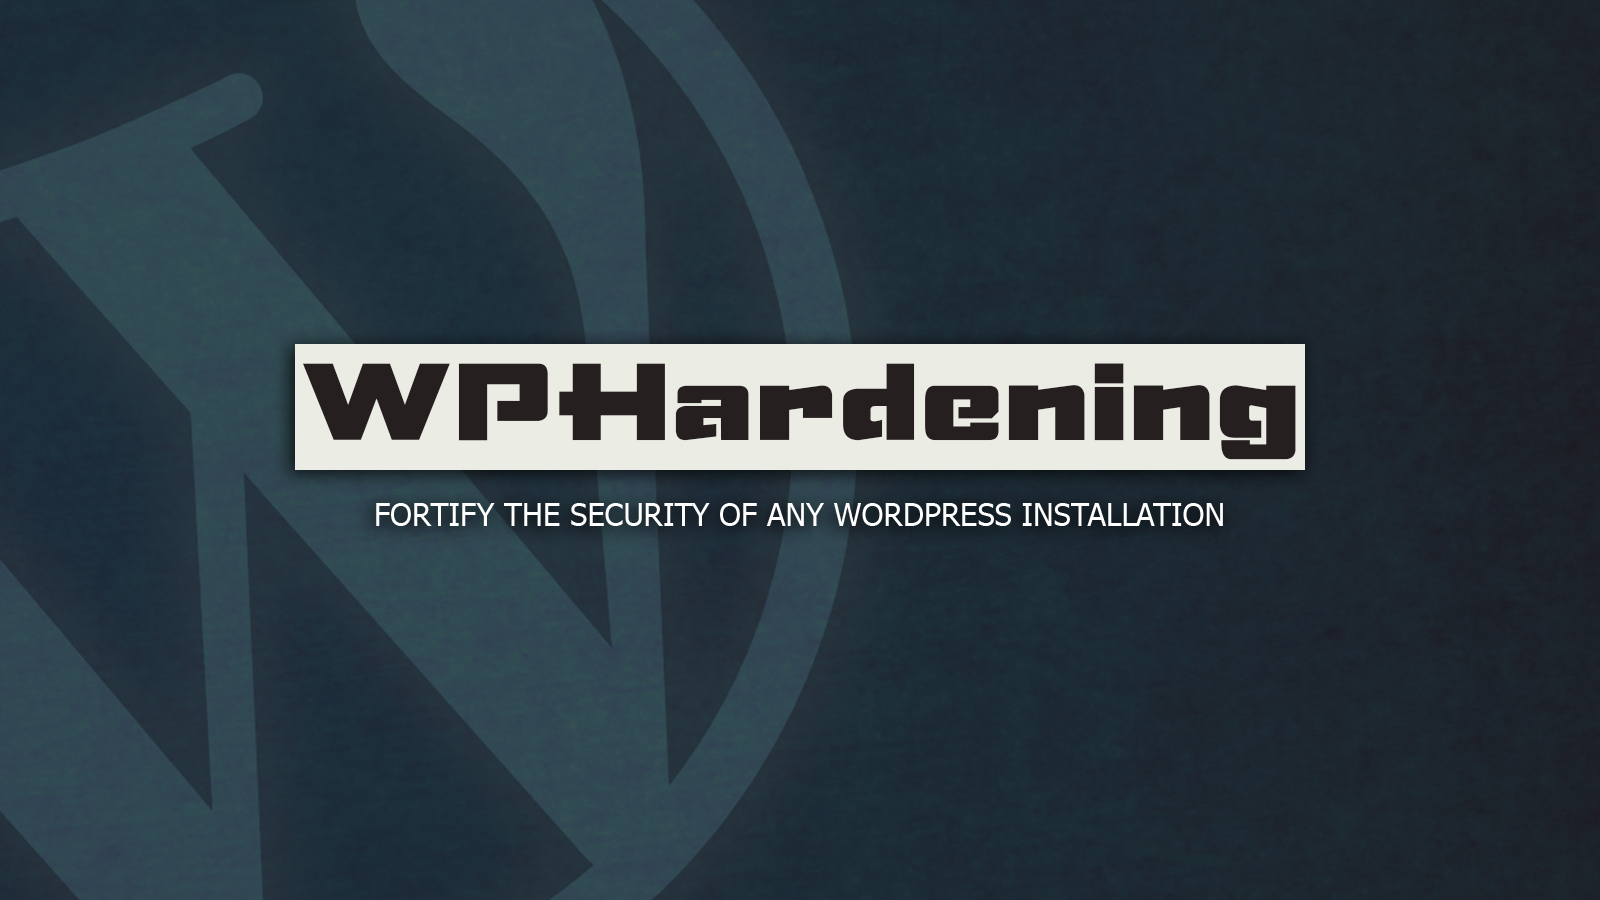 WPHardening - Fortify the Security Of Any WordPress Installation